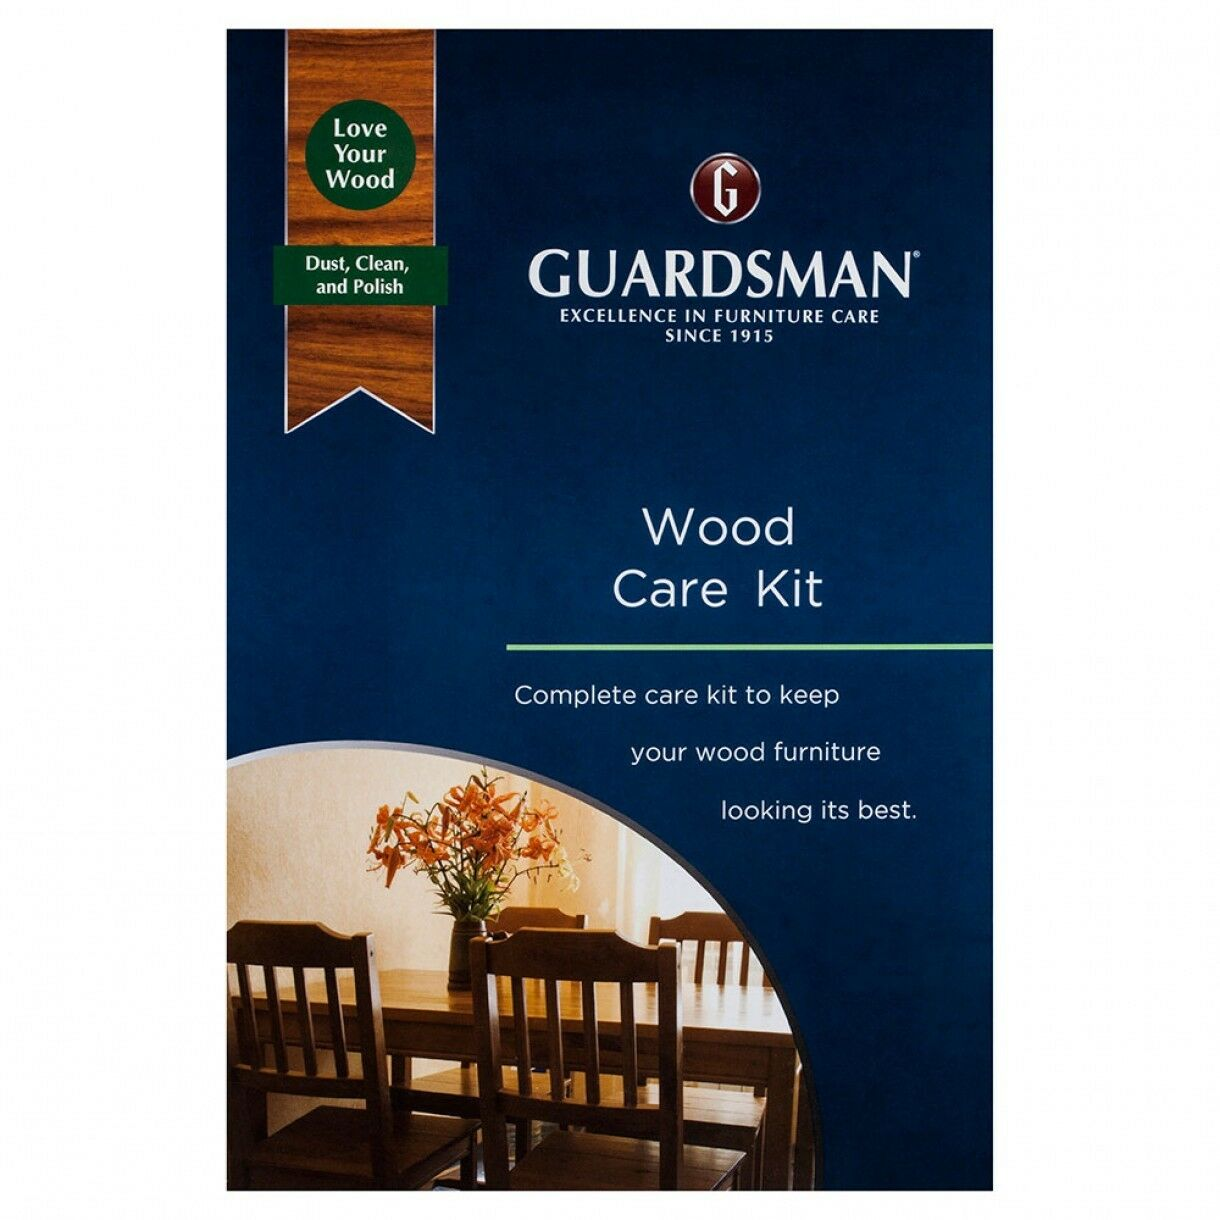 Wood Care Kit Guardsman Complete Wooden Furniture Care Clean Polish Dust Ebay